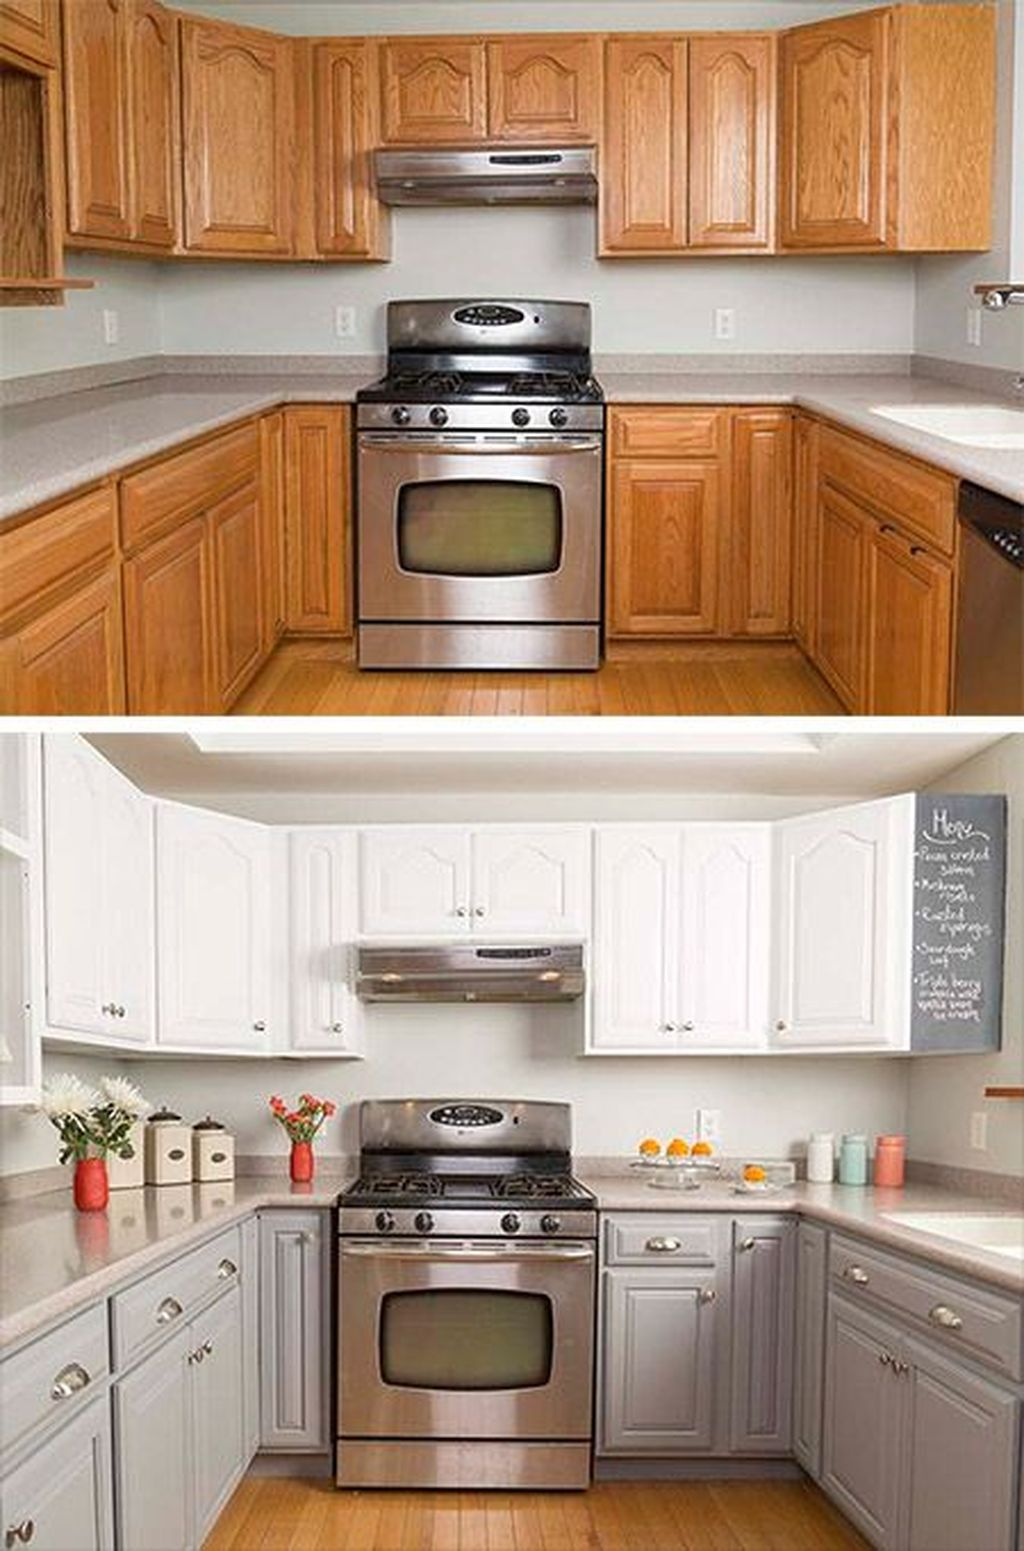 36 Newest Farmhouse Cabinets Makeover Ideas For Kitchen Update Kitchen Cabinets Simple Kitchen Diy Kitchen